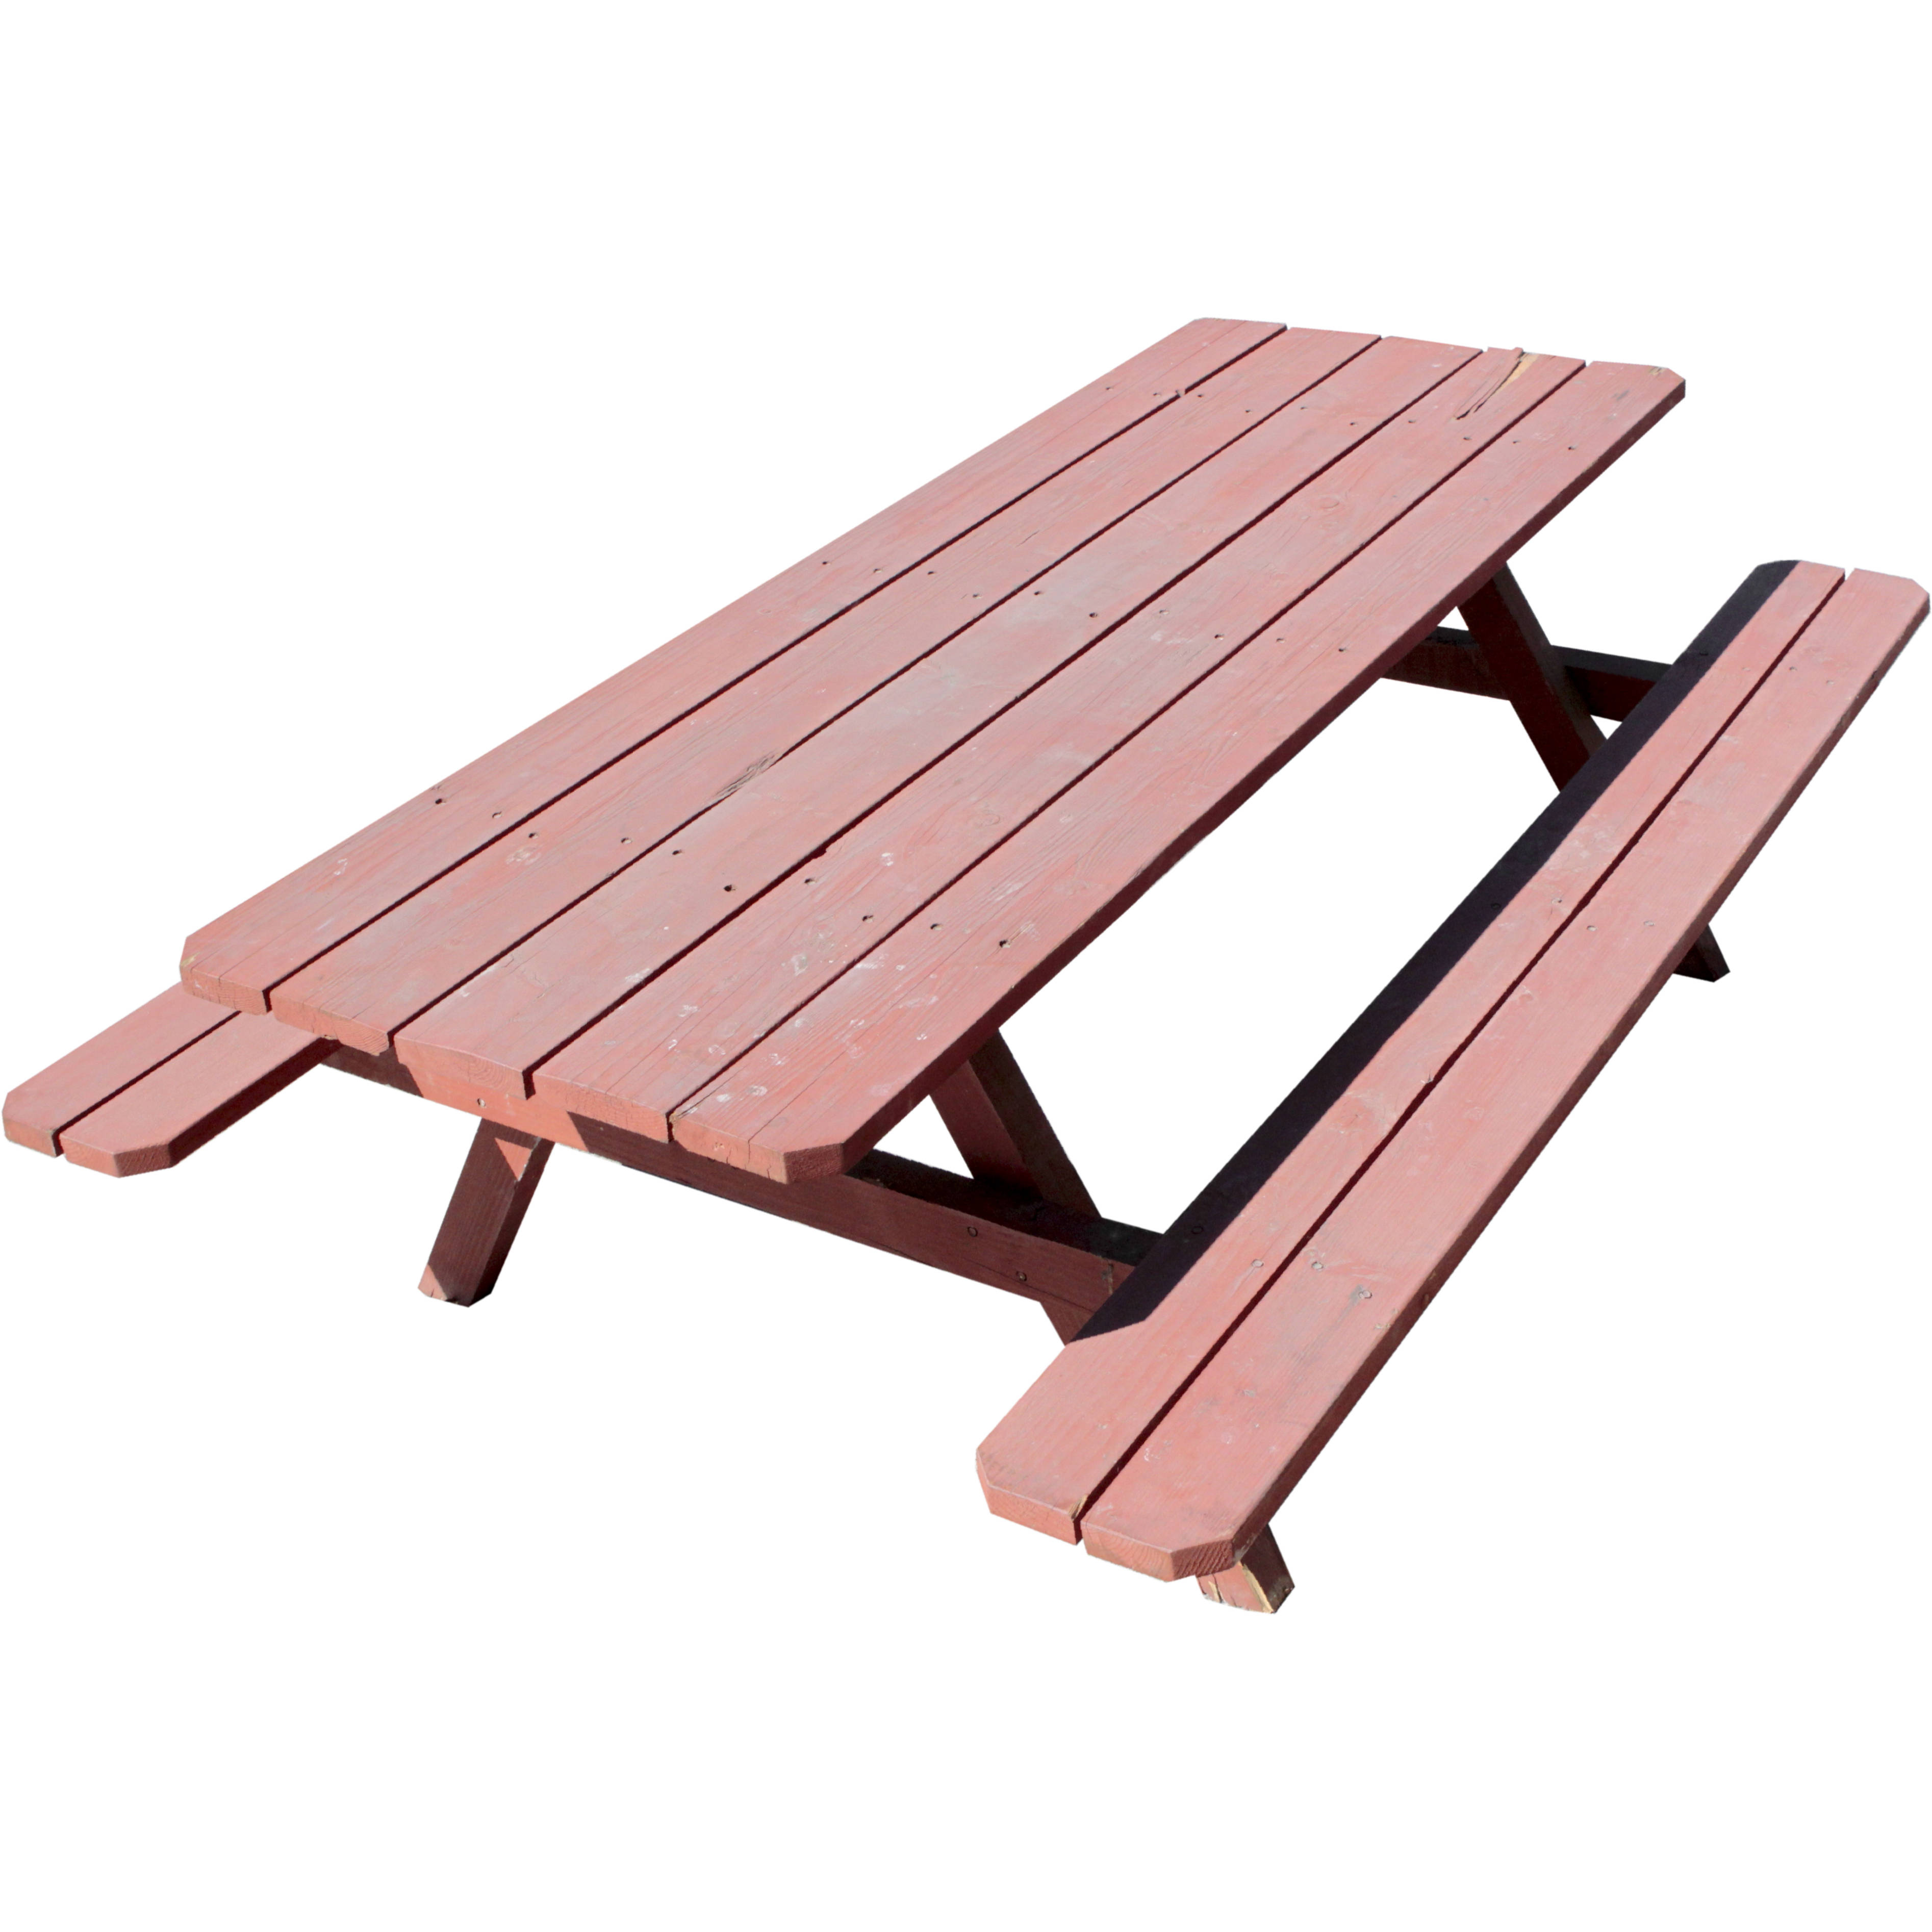 PICNIC TABLE / WOOD / LARGE